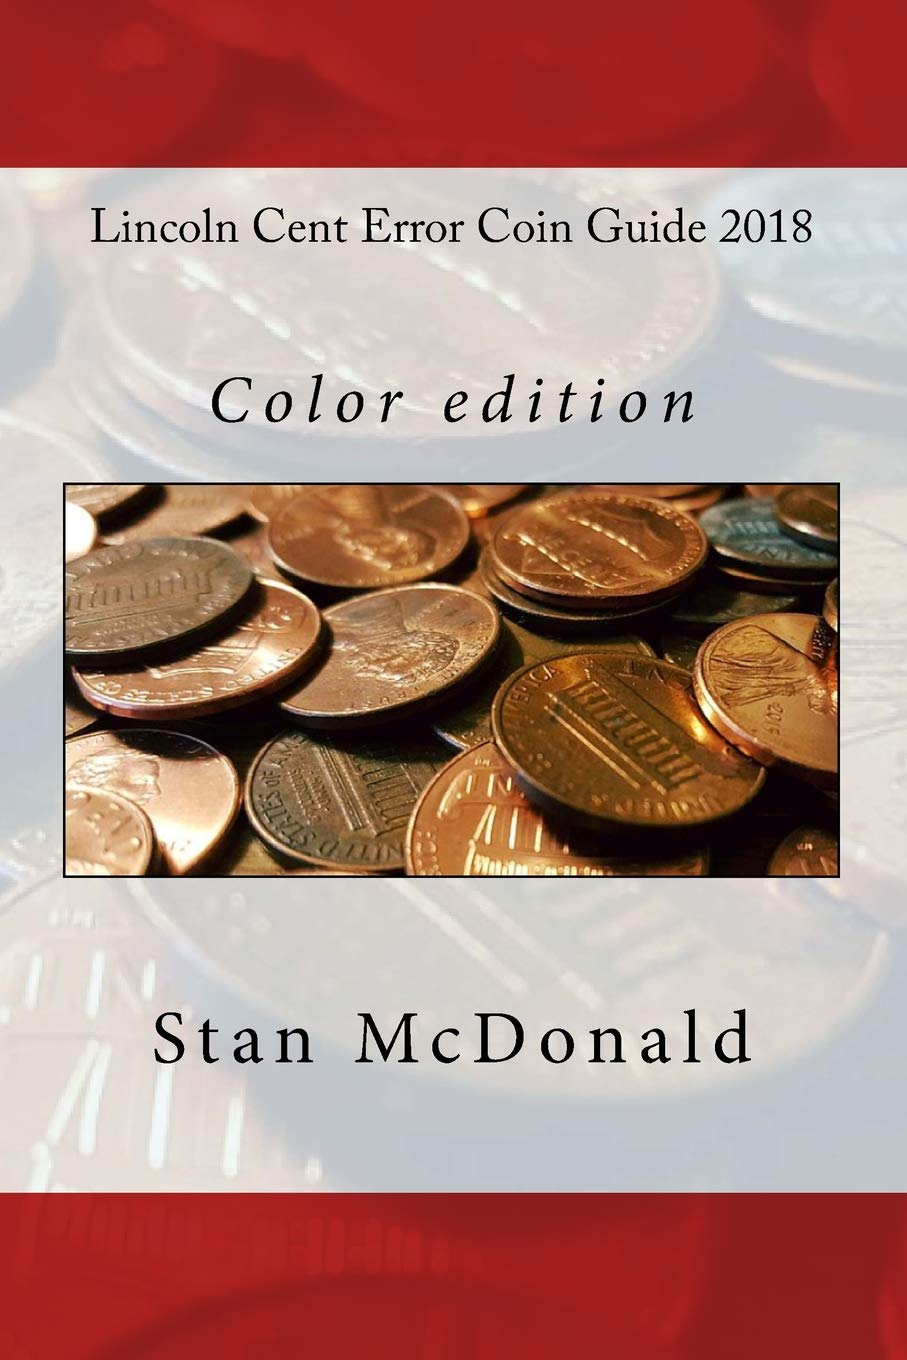 Lincoln Cent Error Coin Guide 2018: Color edition: Stan